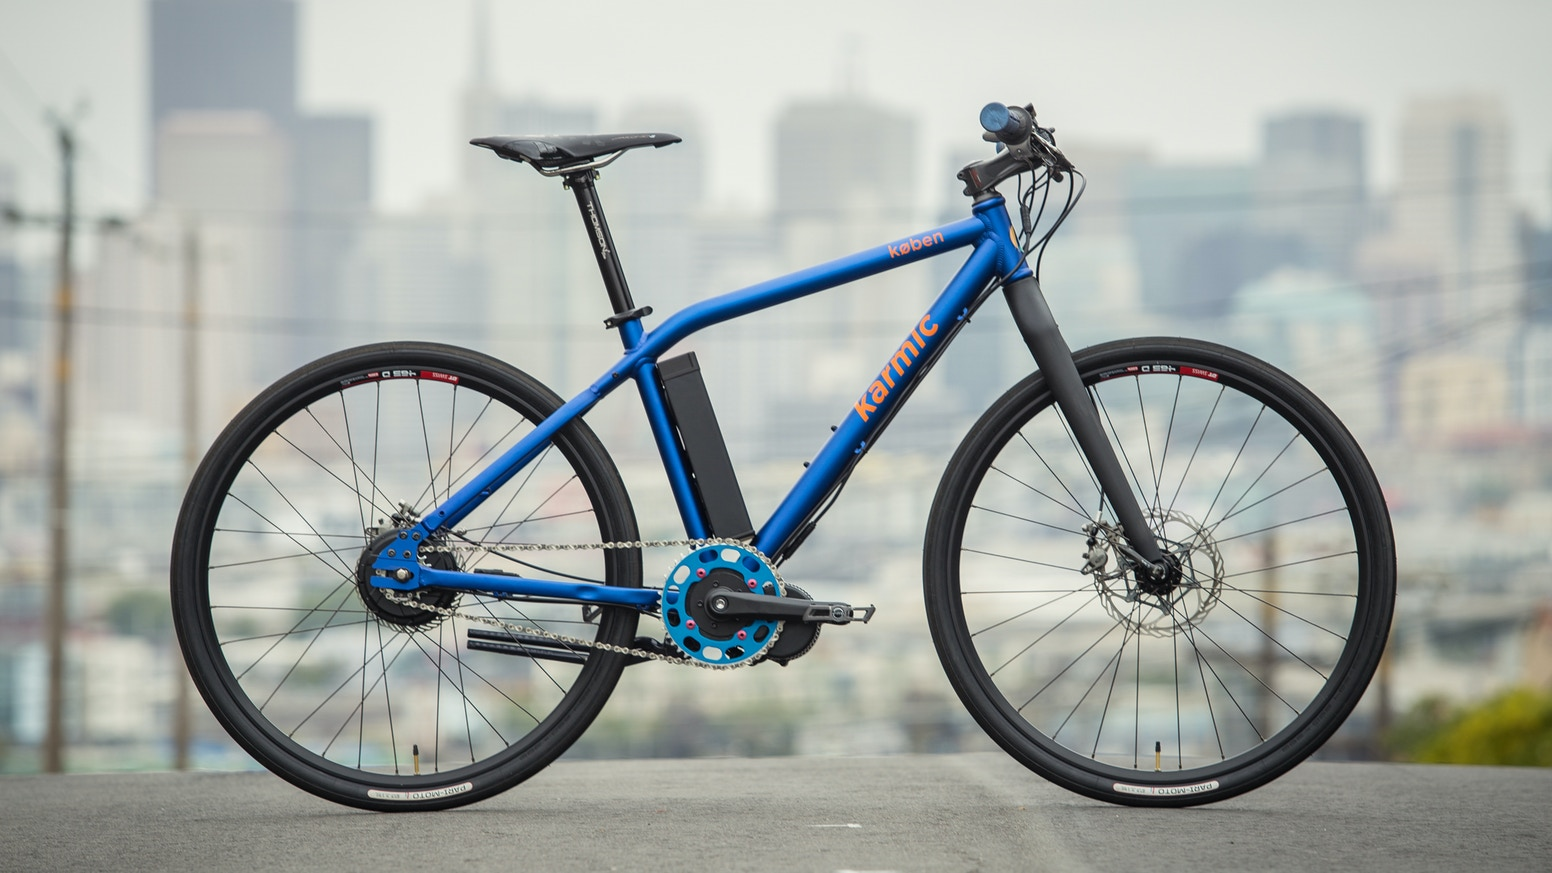 The K 248 Ben A Modern Electric Bike For The Human Race By